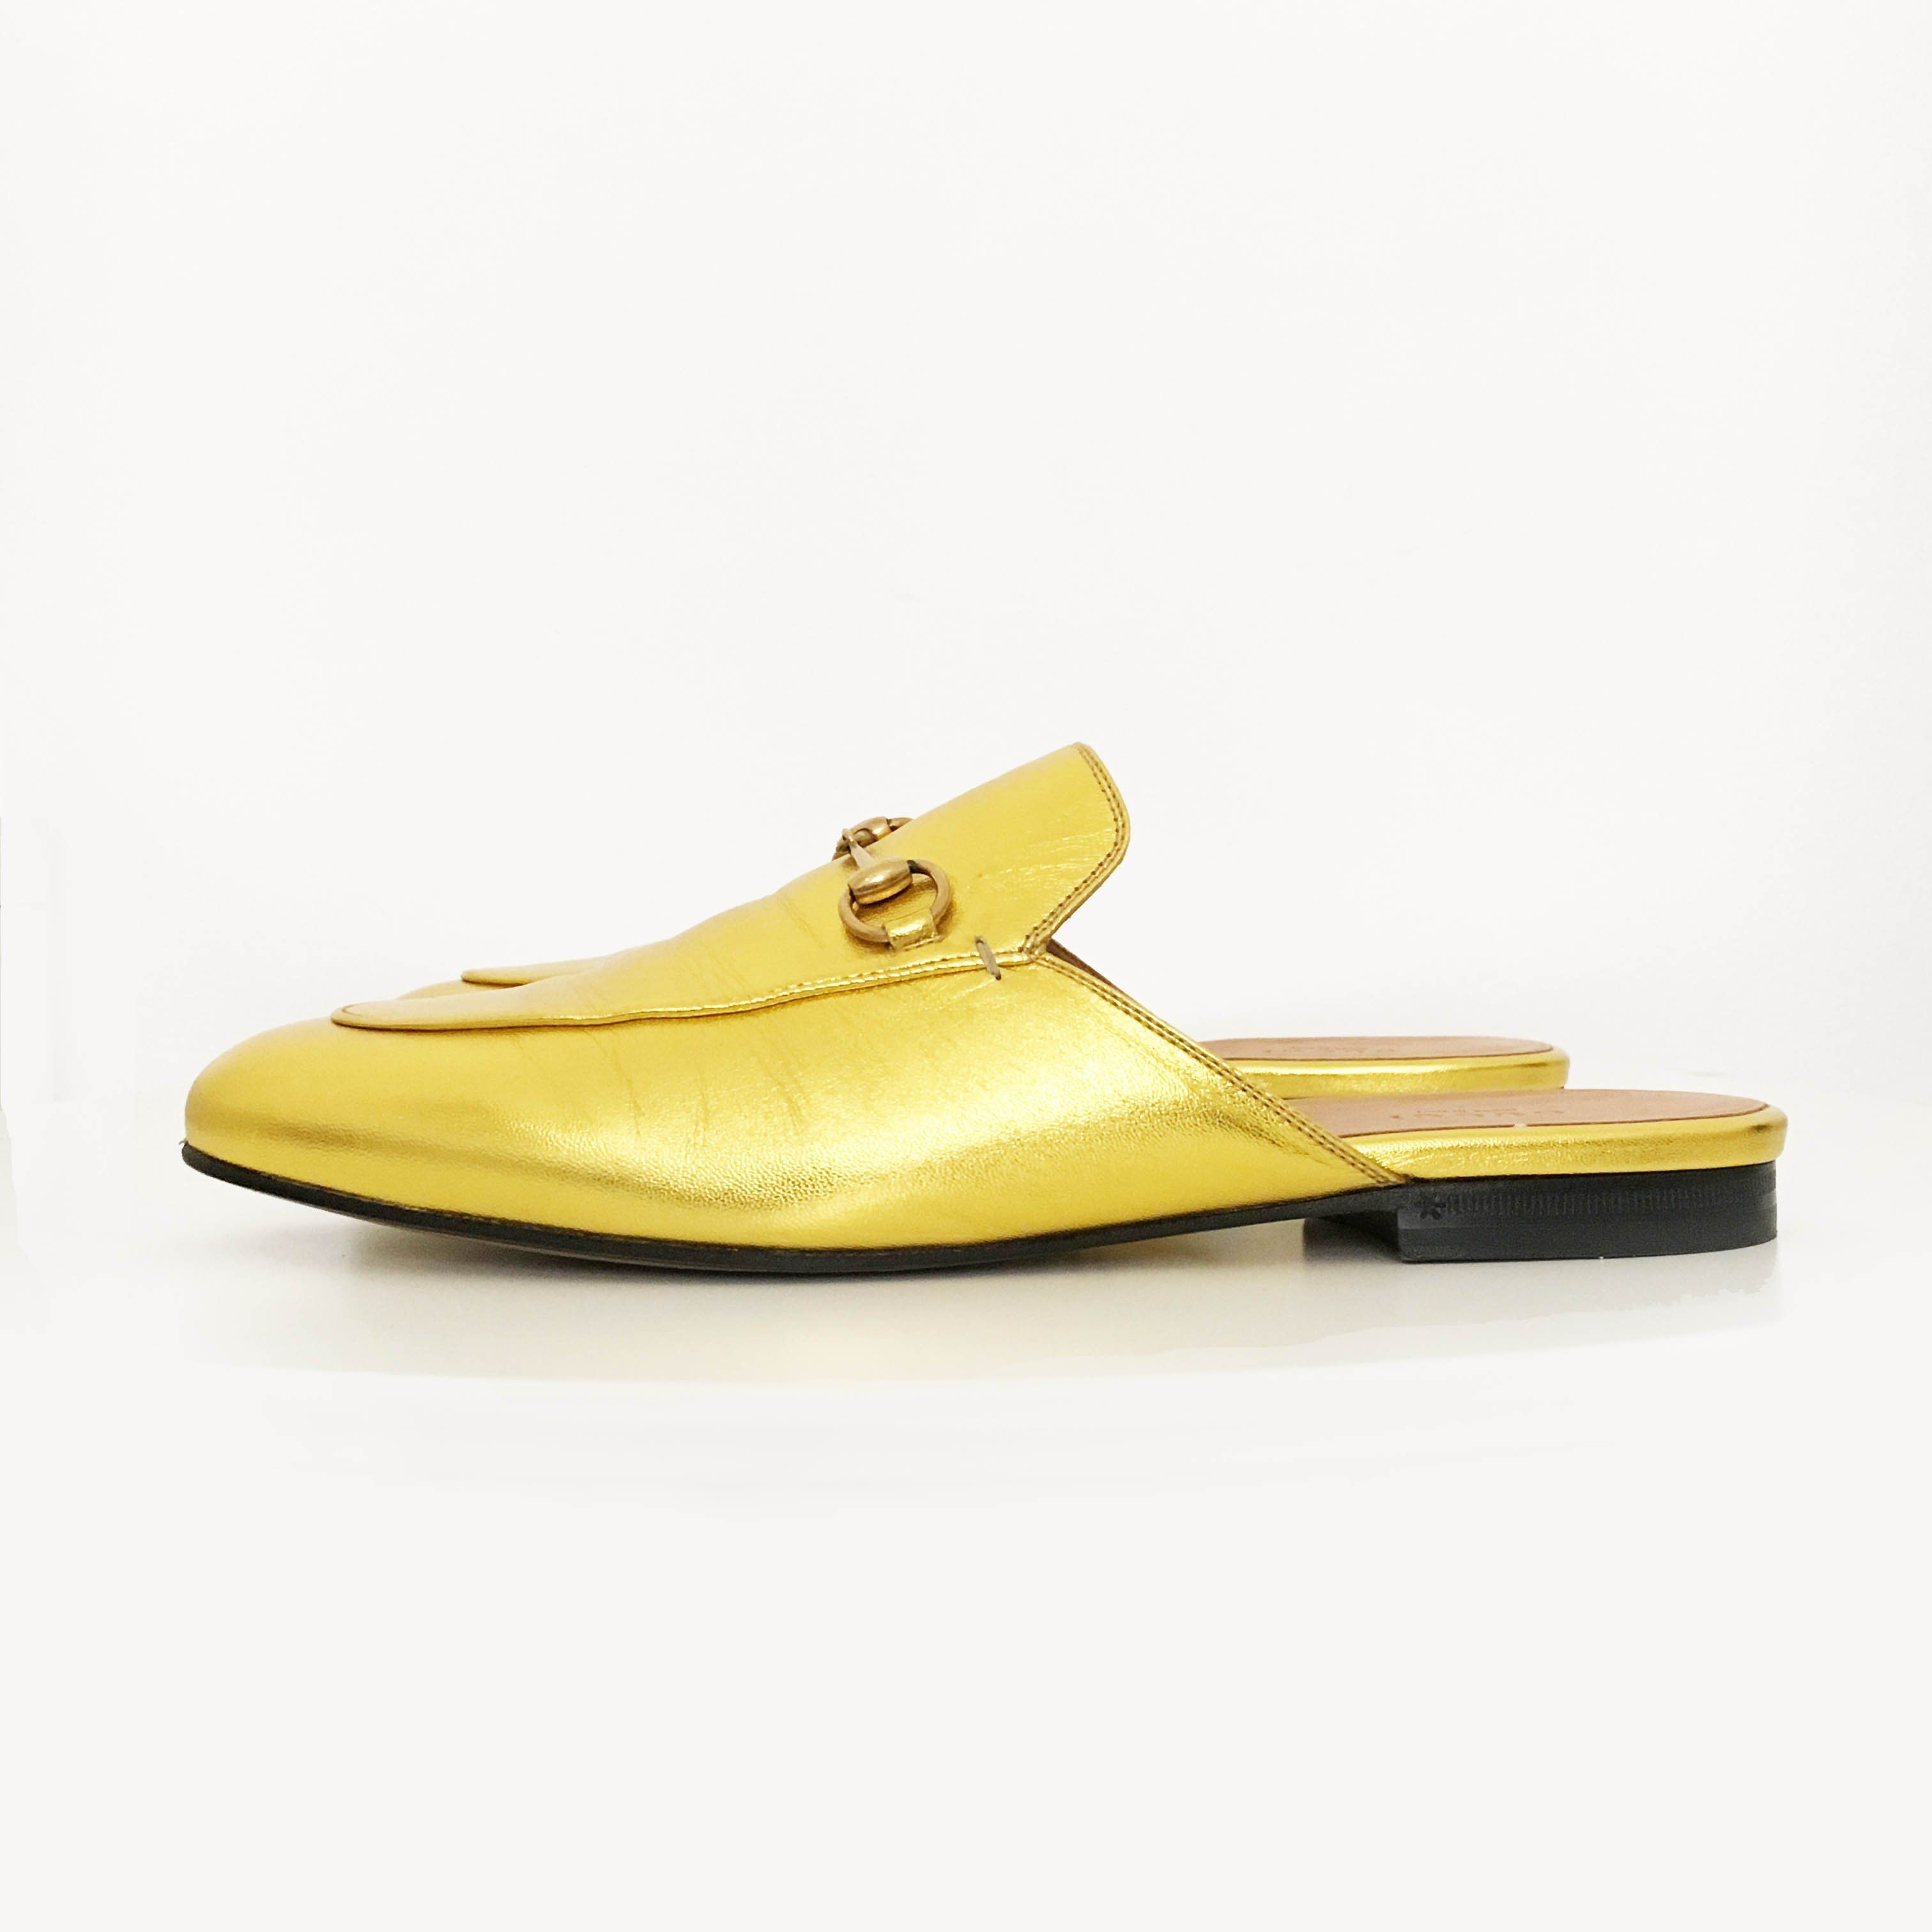 Gucci Princetown Gold Metallic Leather Slipper